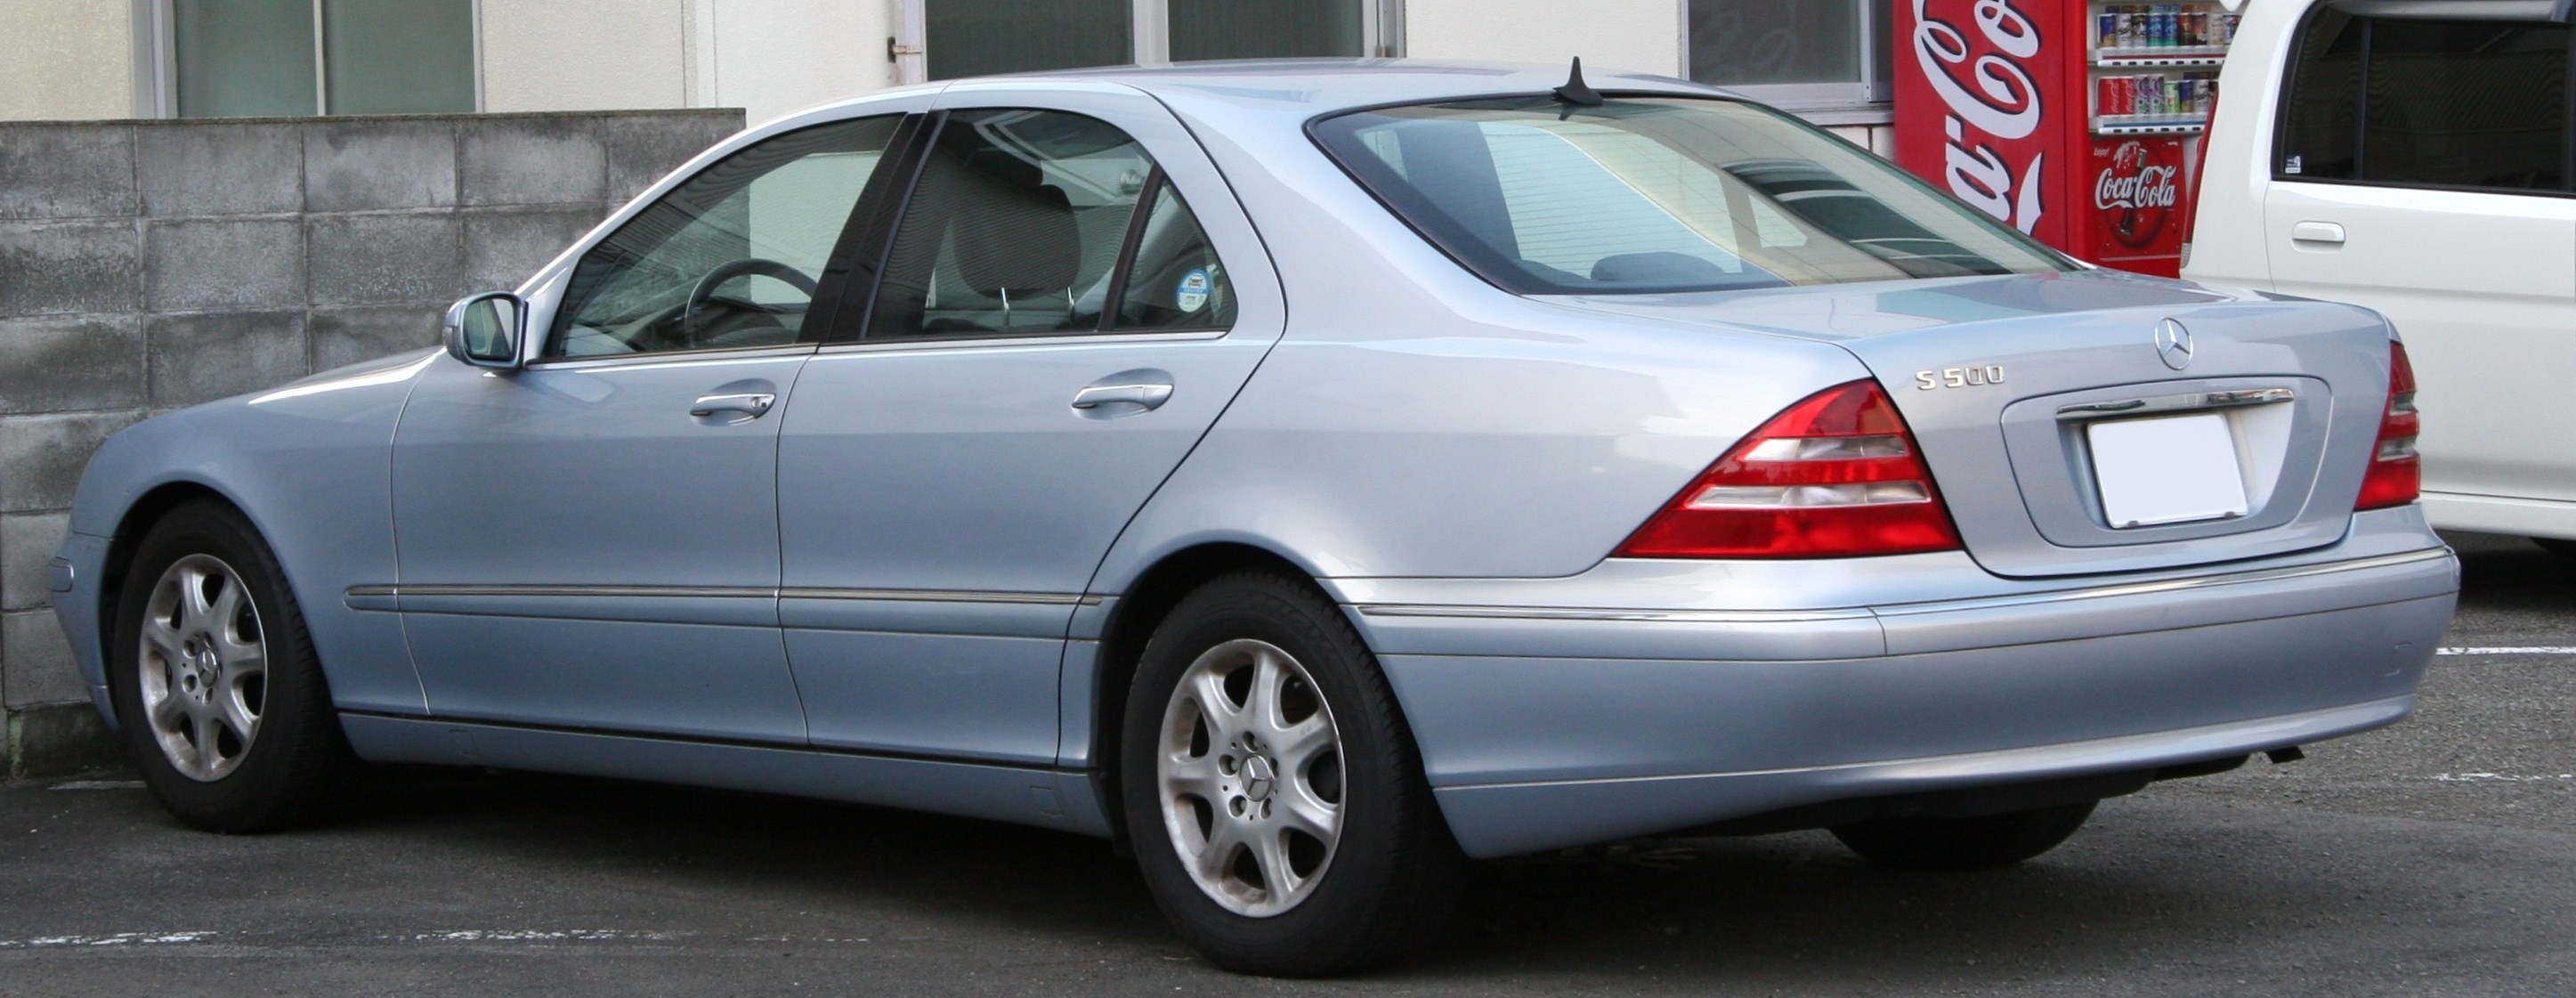 Old Benz Modified Best Of File1998 2002 Mercedes Benz S500 Rear Wikimedia Commons-2408 Of Elegant Old Benz Modified-2408